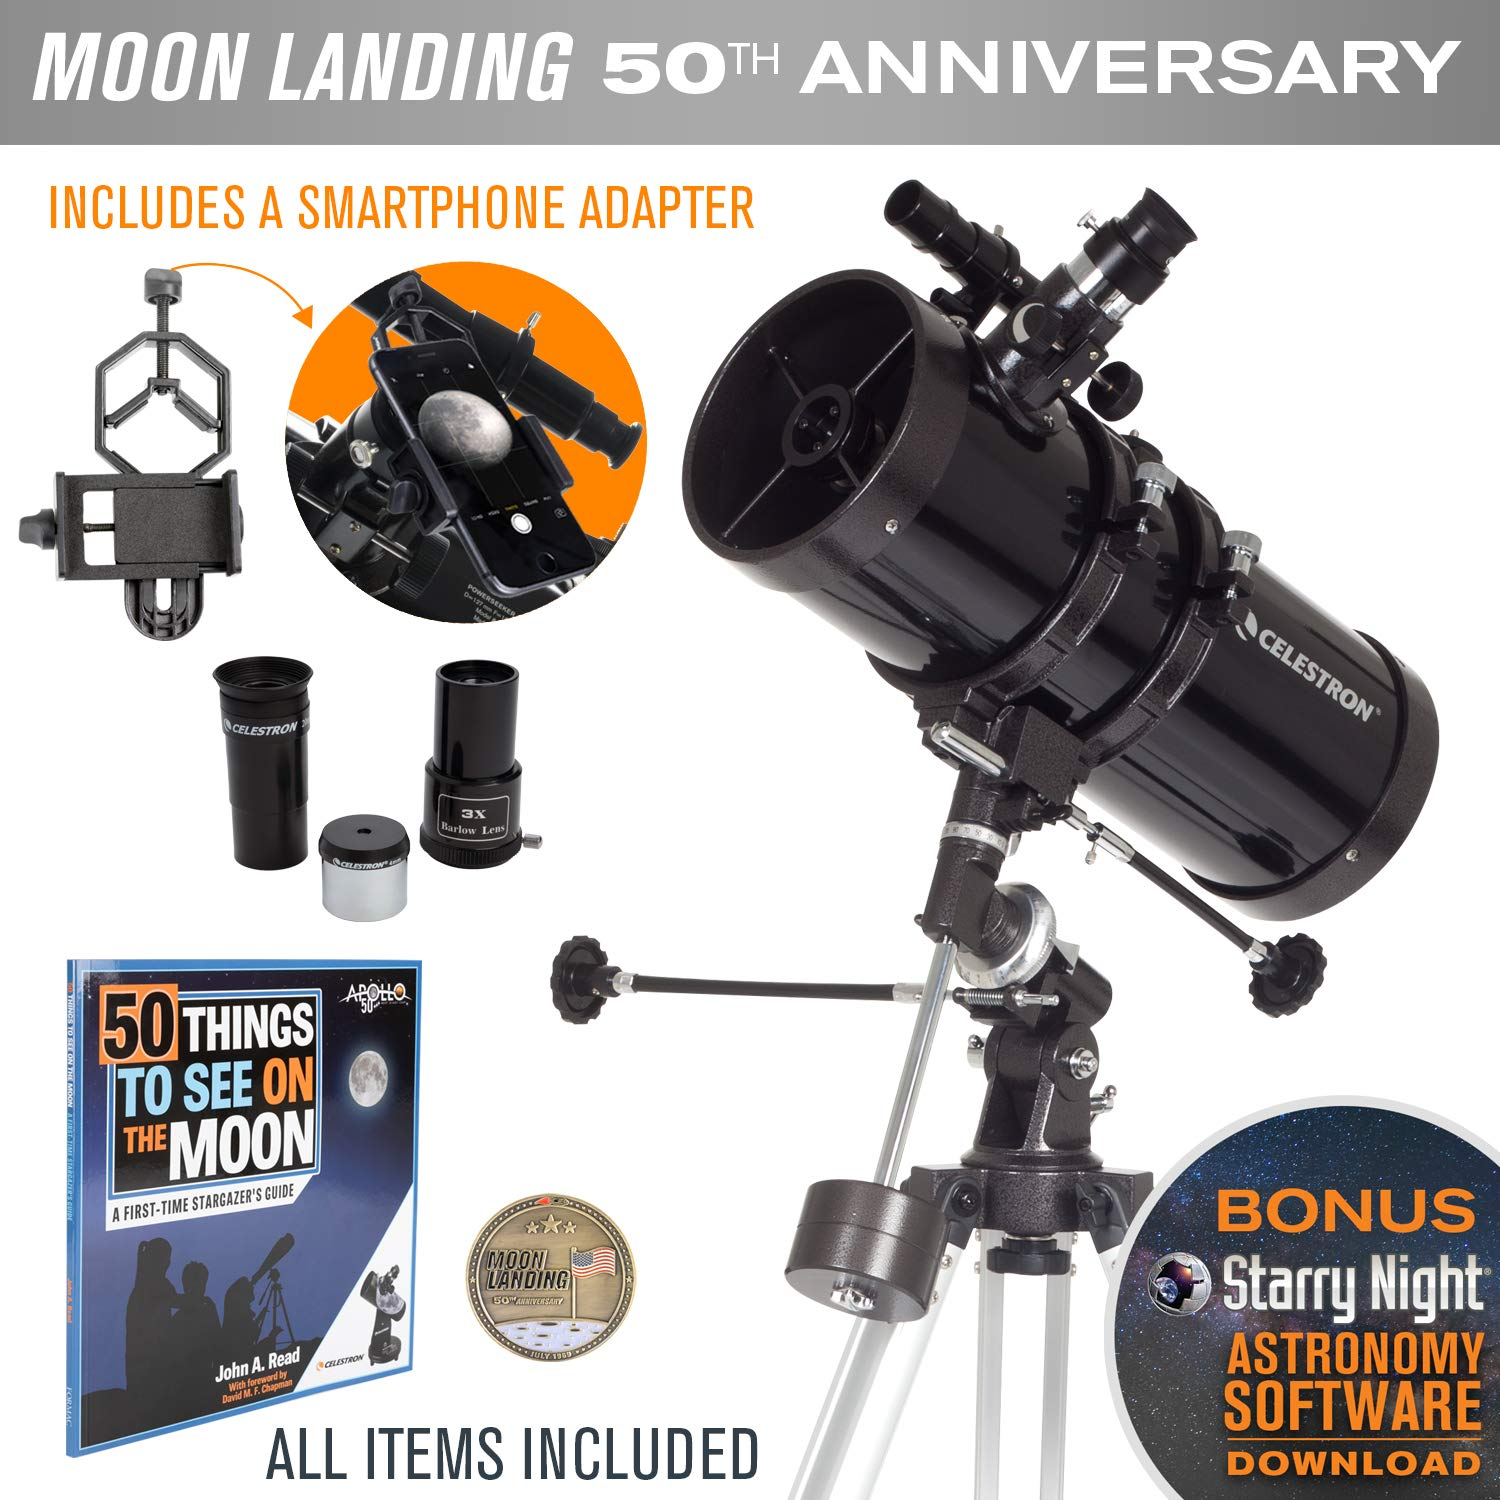 Celestron PowerSeeker 127EQ Newtonian Reflector Telescope with Smartphone Adapter - Limited Edition Apollo 11 50th Anniversary Bundle with Commemorative Coin and Book by Celestron